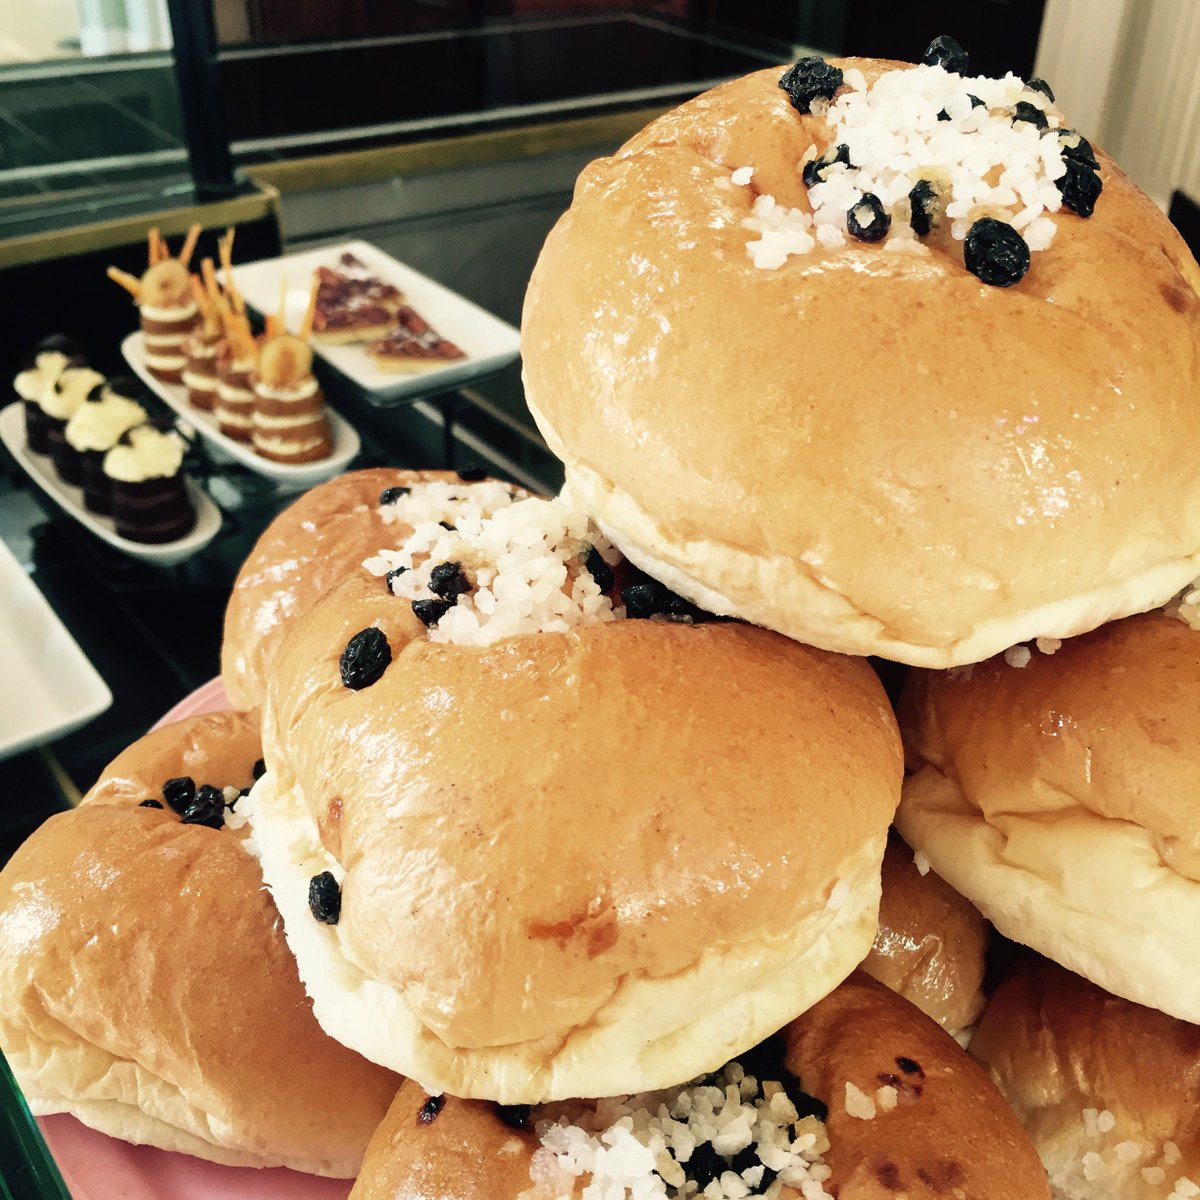 Why are Bath buns the perfect #TuesdayTreat I hear you ask? Because they AARRGGGHHHH!!! #talklikeapirateday is the best day! #PiratesLife <br>http://pic.twitter.com/JqsO6rICFM